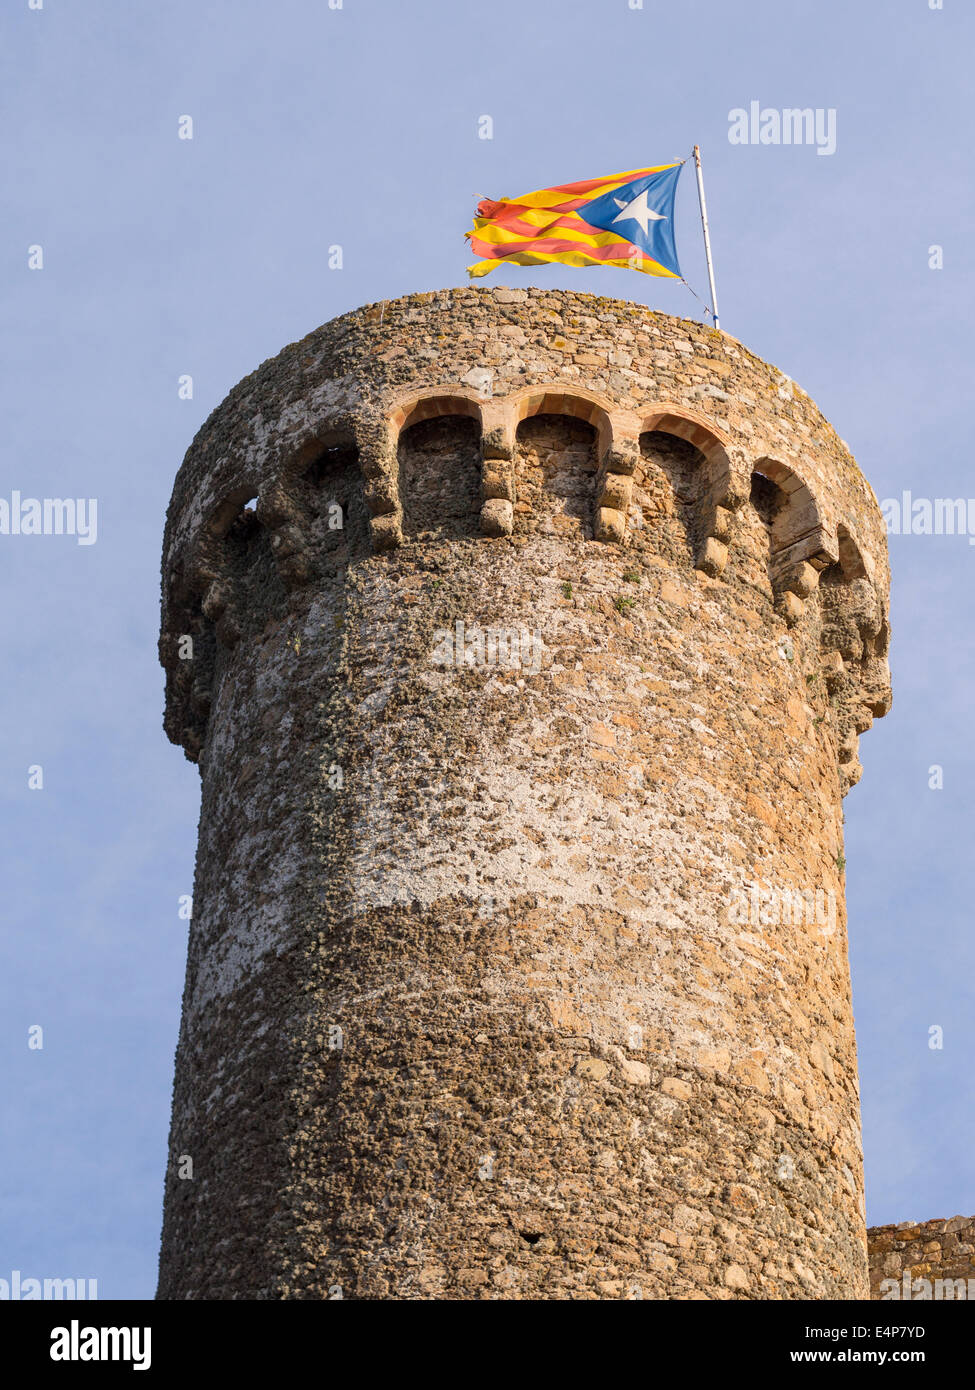 Tower of Tossa de Mar topped by a Catalonian Flag. The massive stone defensive tower of this landmark along the - Stock Image